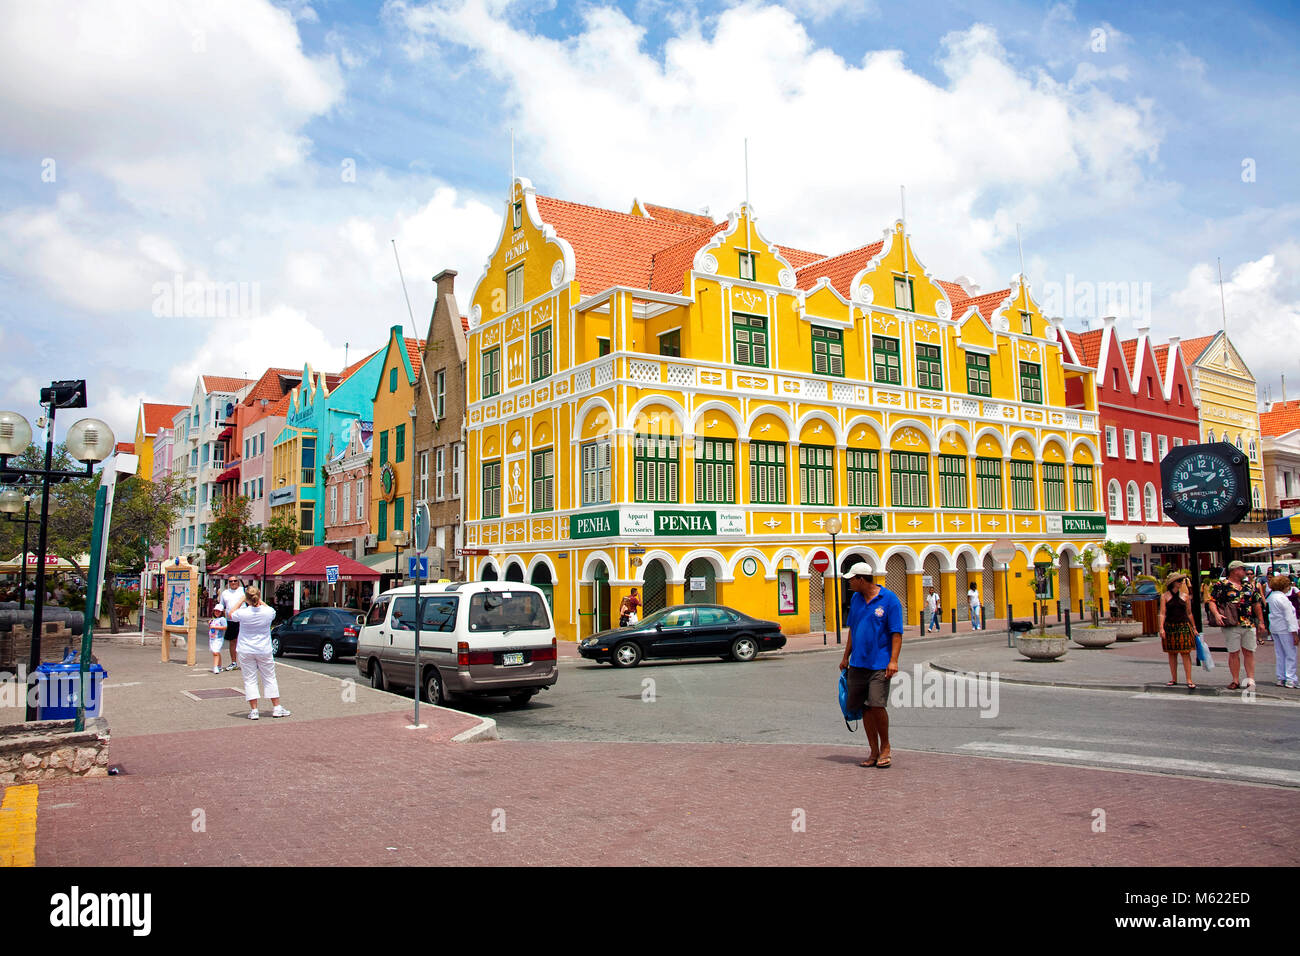 Penha building (built 1708) at trade arcade historical colonial buildings Punda district, Willemstad, Curacao, Netherlands - Stock Image